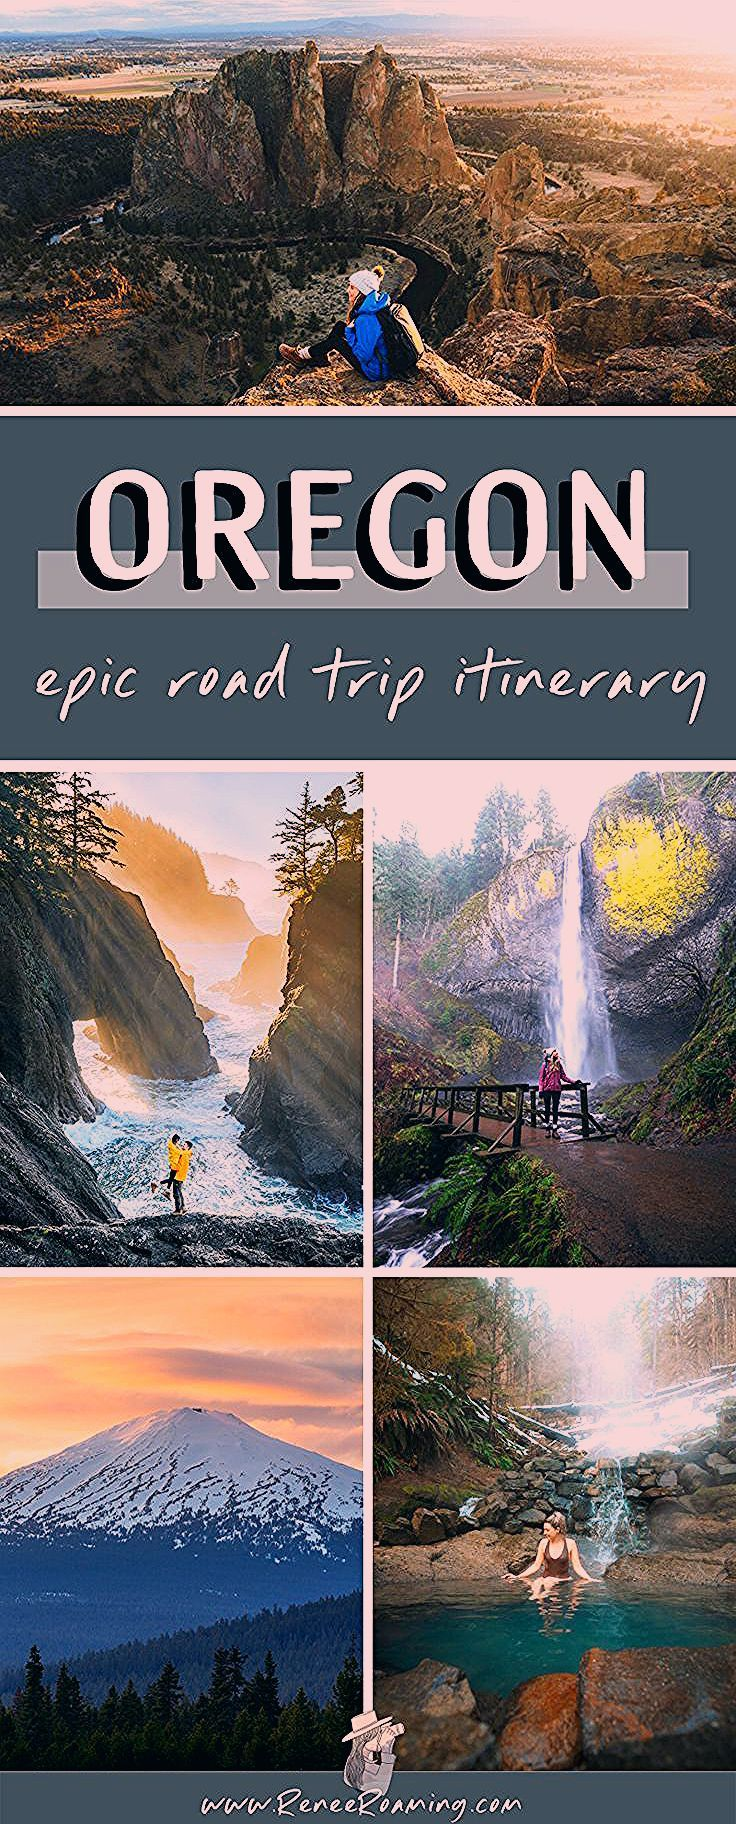 Photo of Oregon 7 Day Road Trip Exploring the Coast, Mountains, Lakes, and Waterfalls!